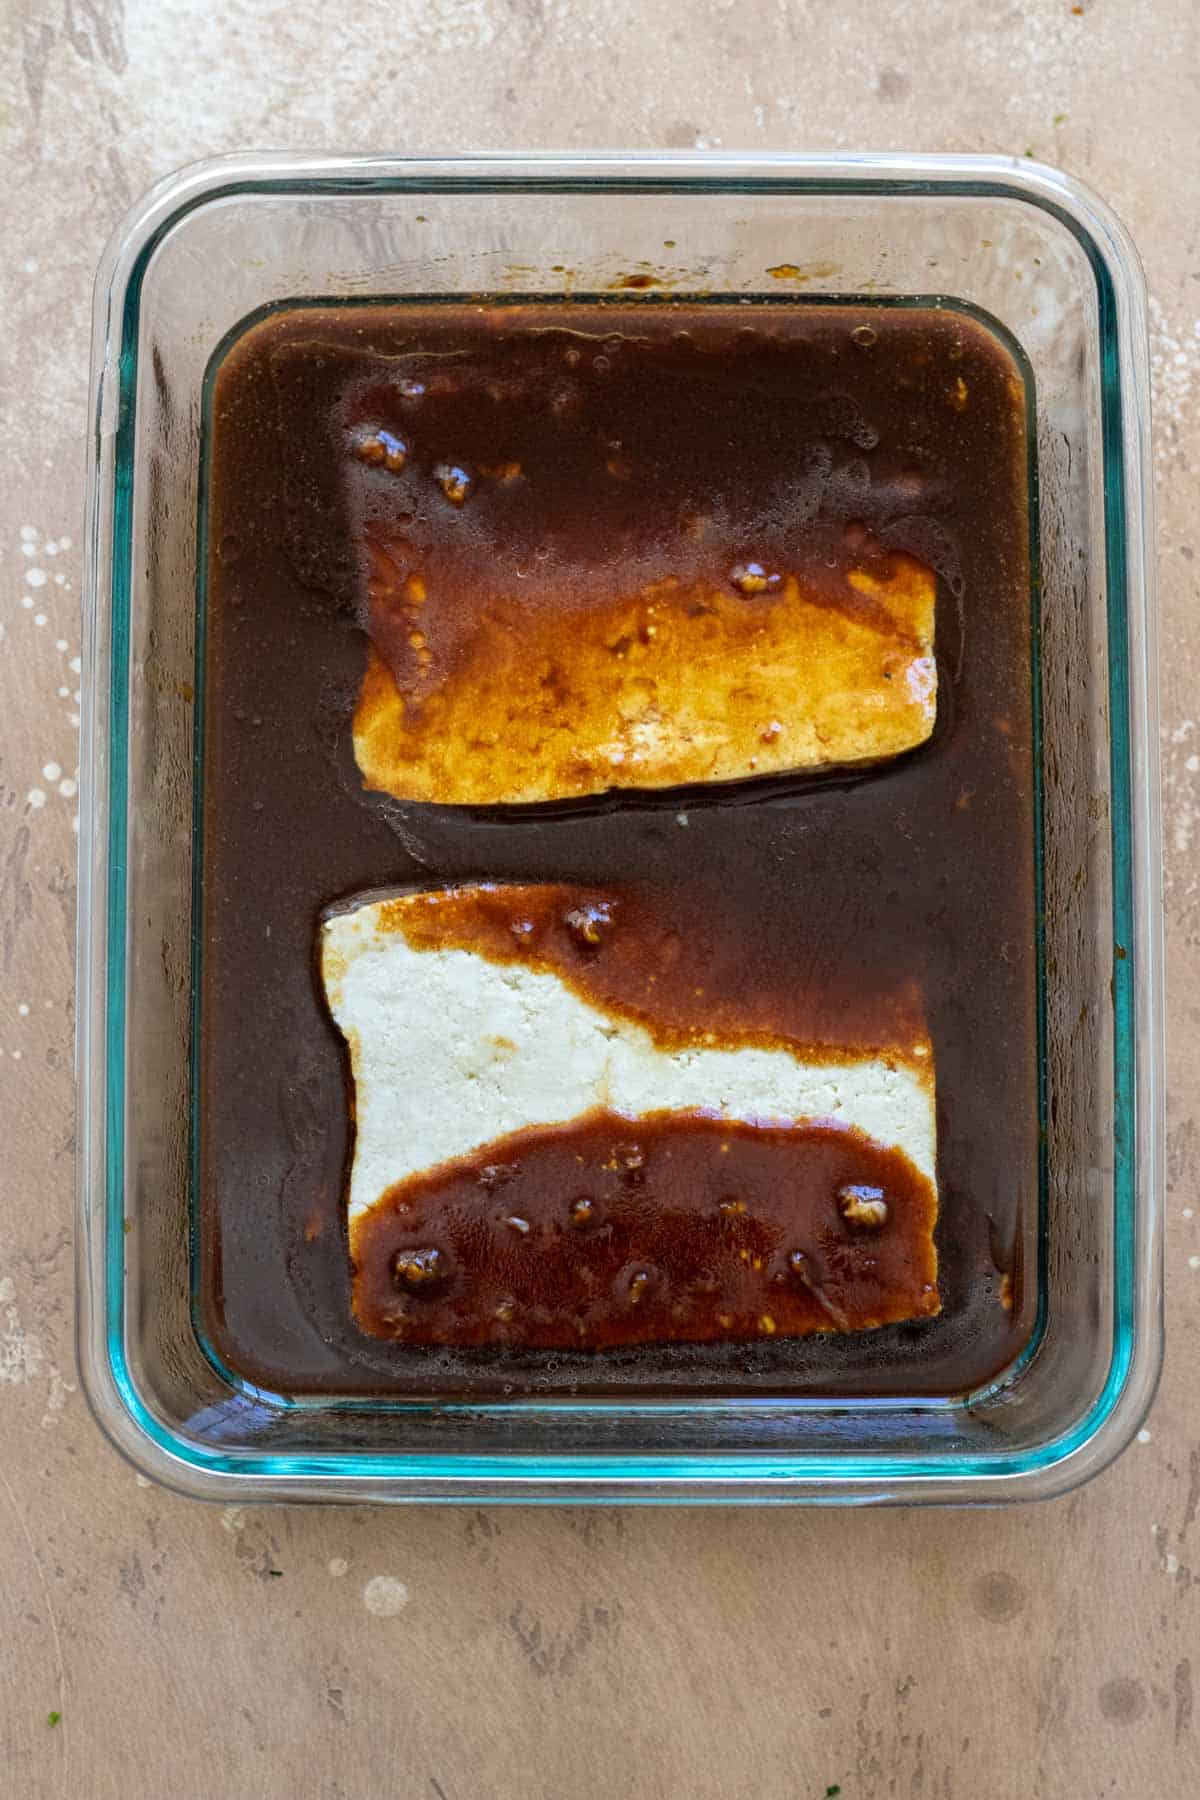 Tofu slices marinading in mixture in shallow glass dish.